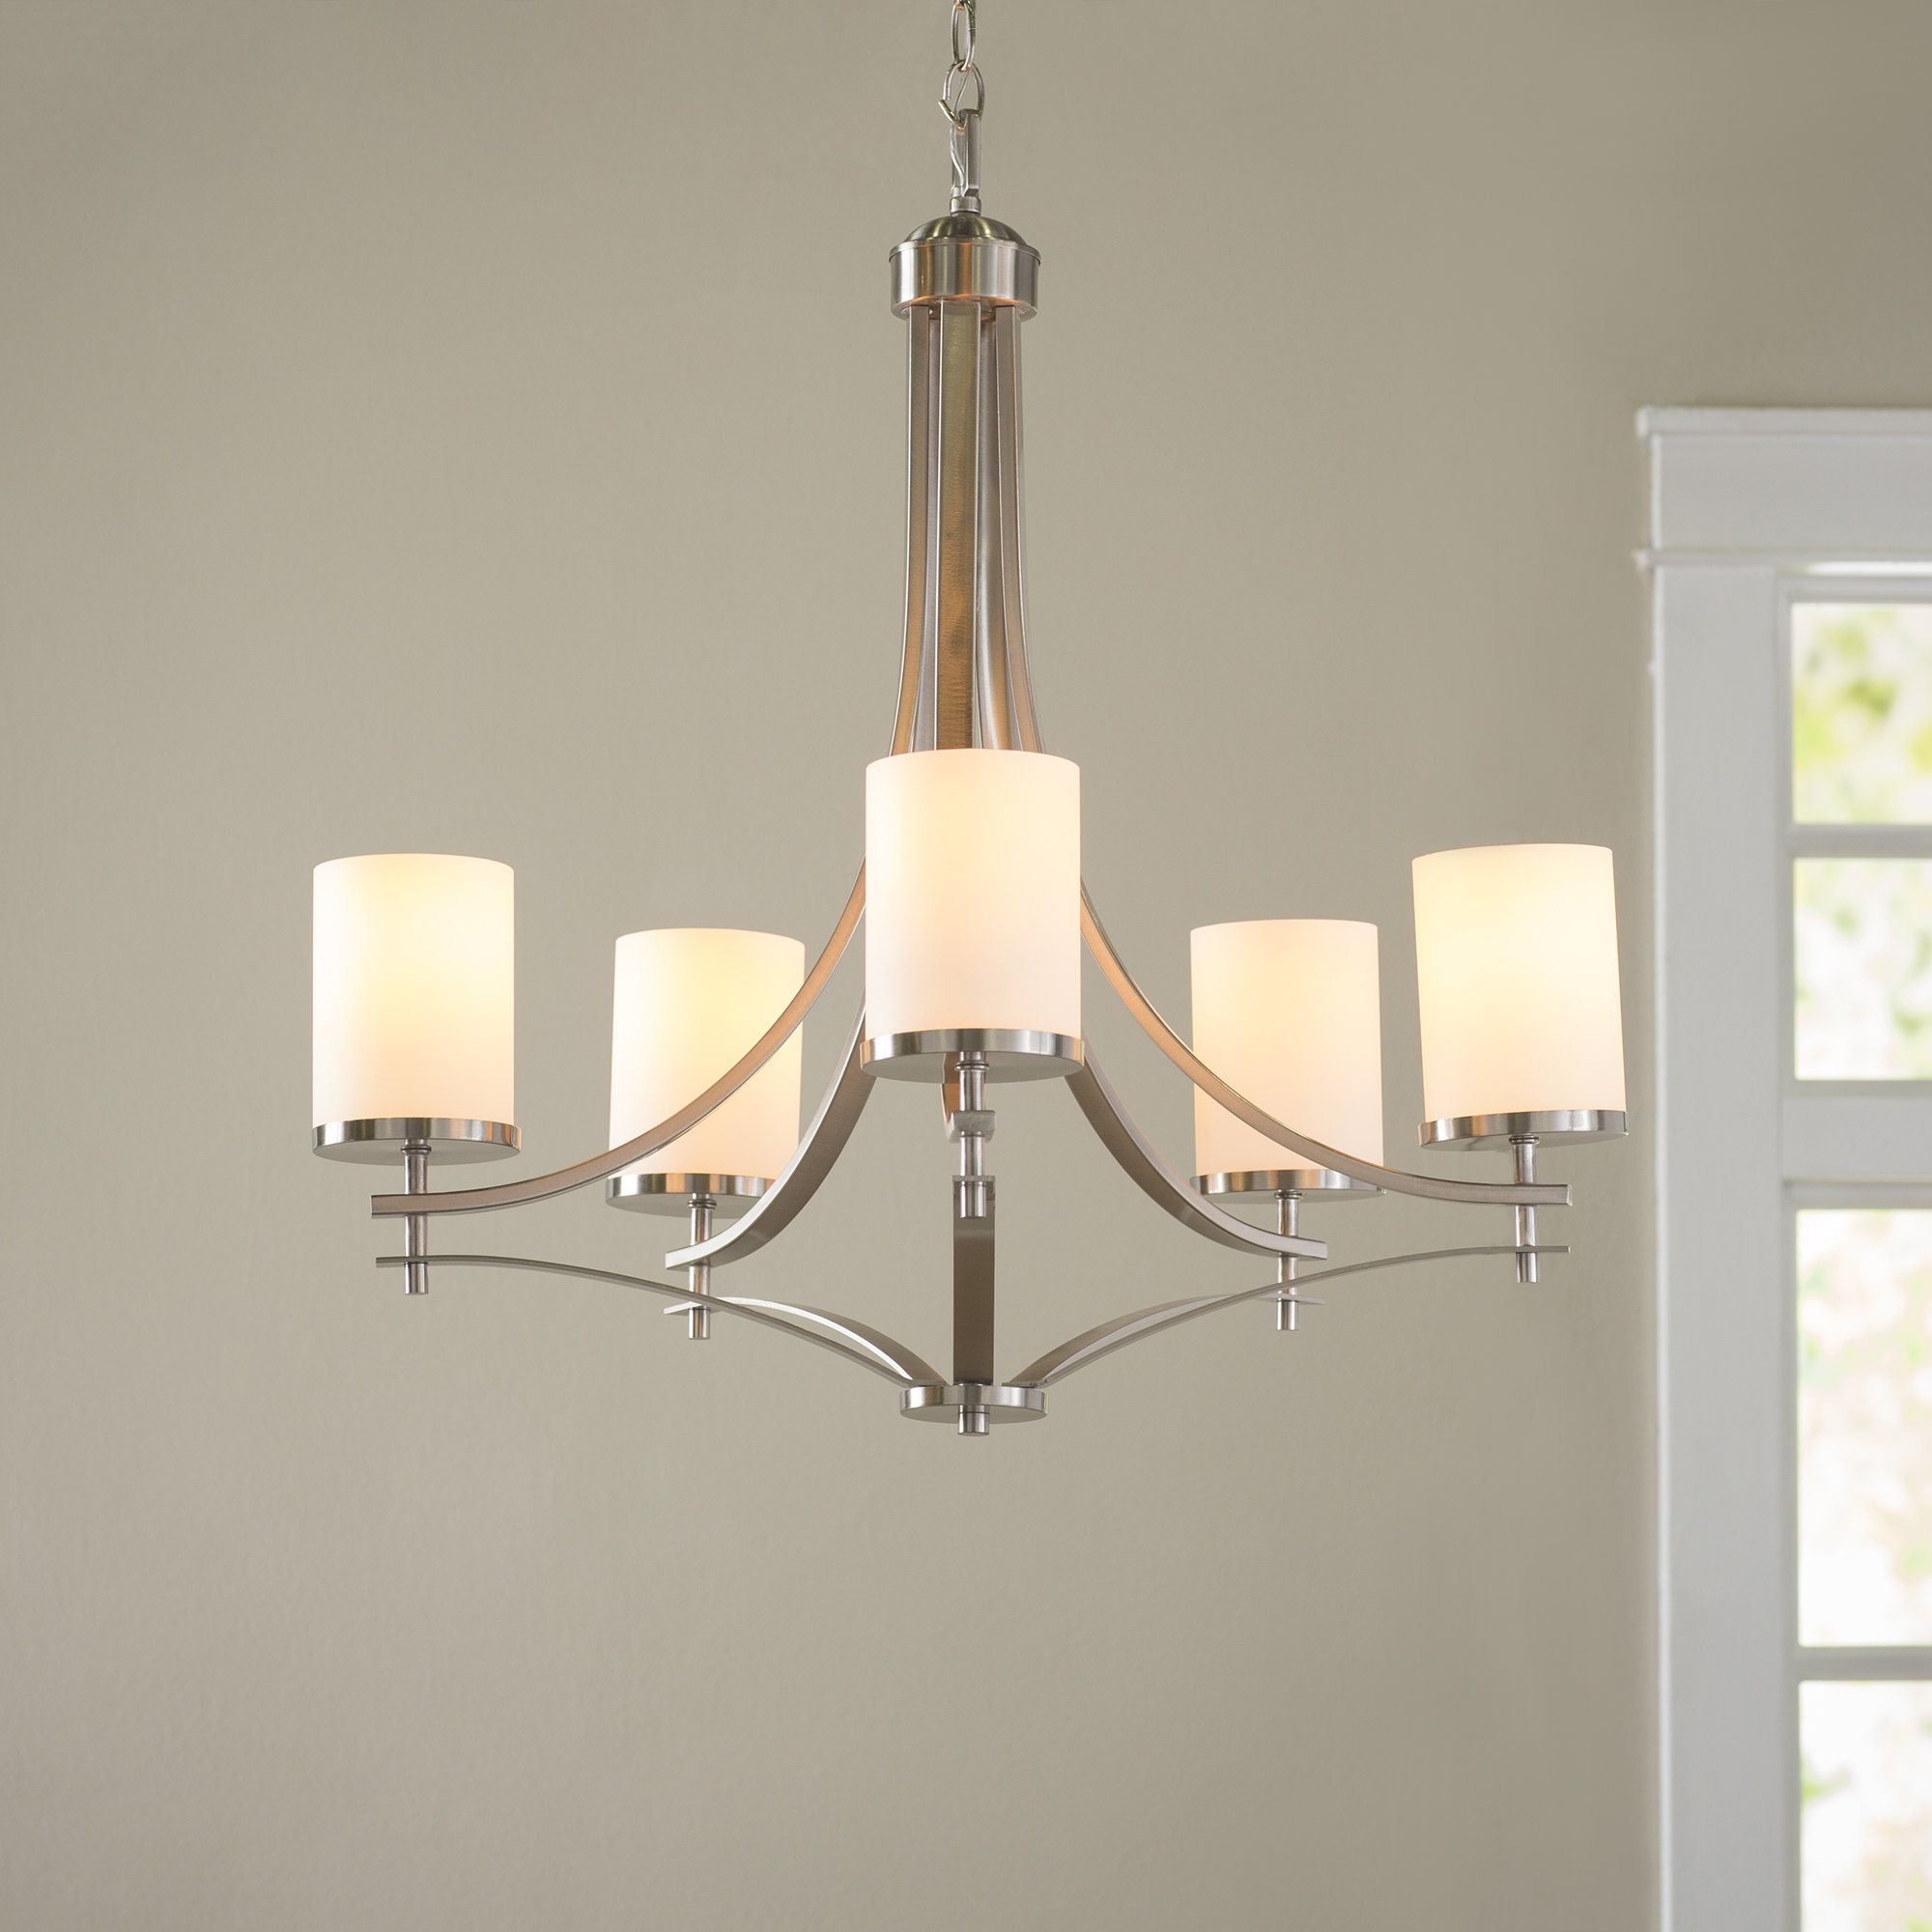 Agnes 5-Light Shaded Chandelier pertaining to Suki 5-Light Shaded Chandeliers (Image 1 of 30)